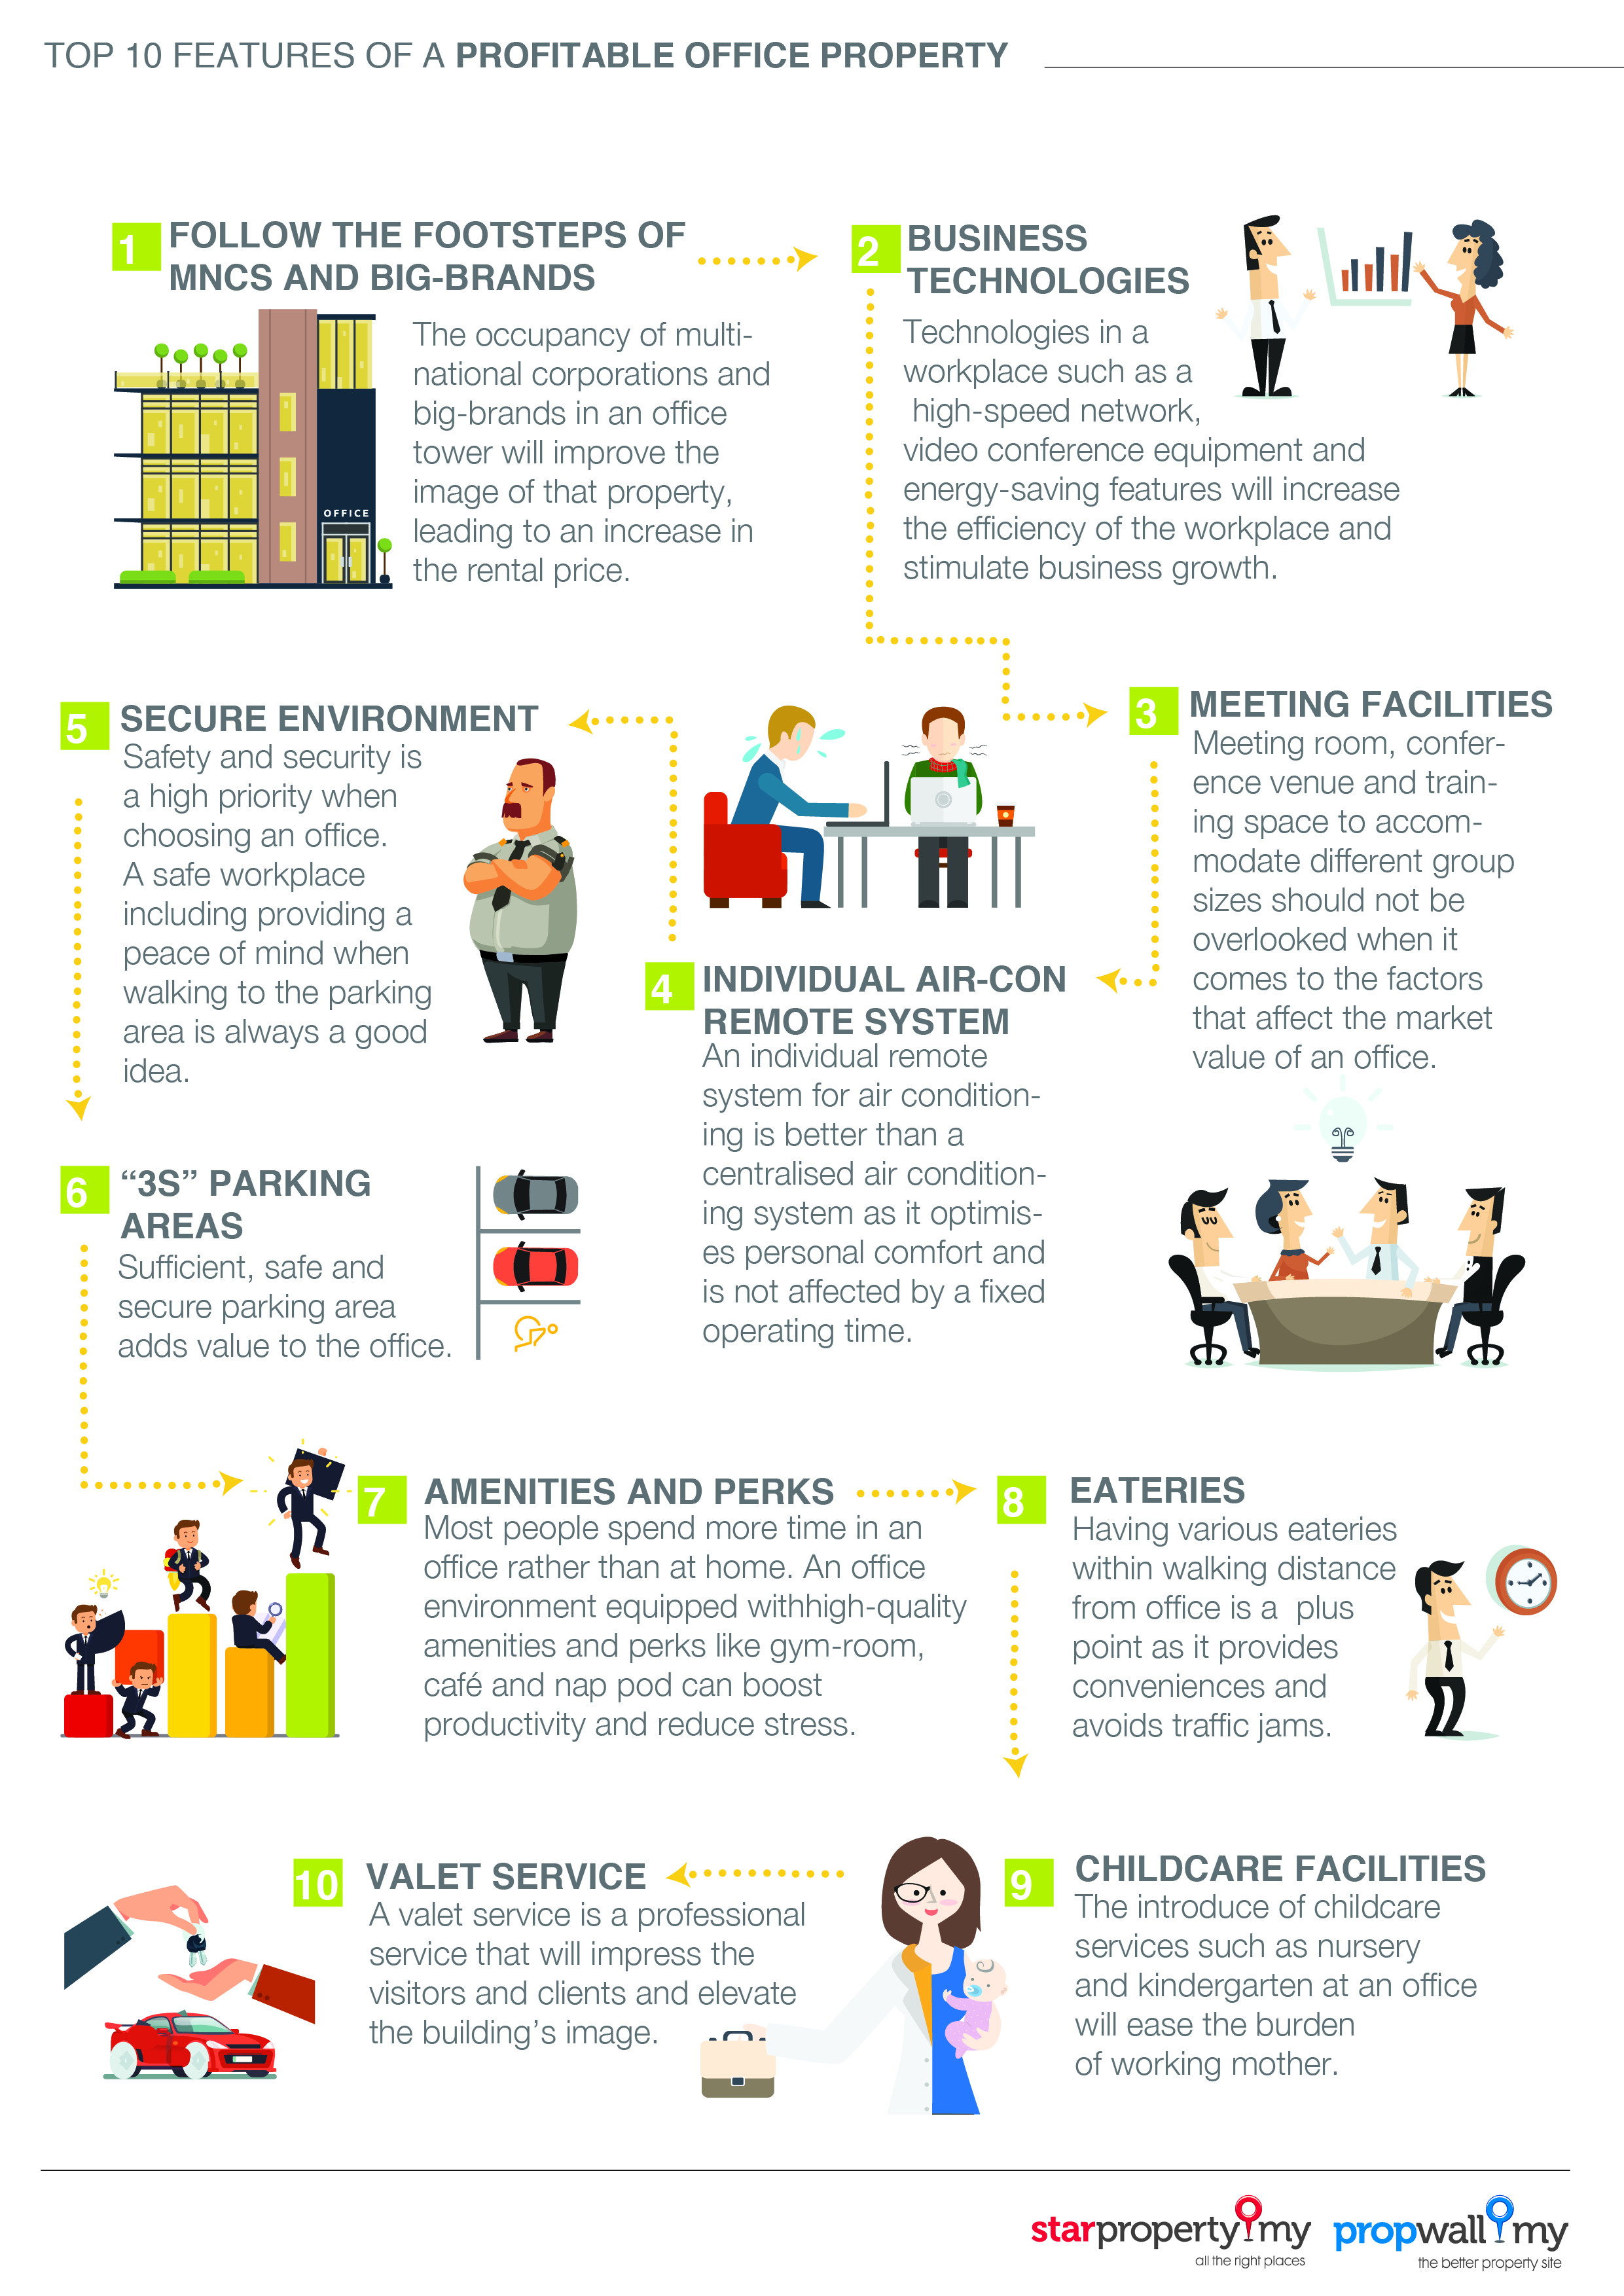 Infographic_-_Top_10_features_of_a_profitable_office_property-01